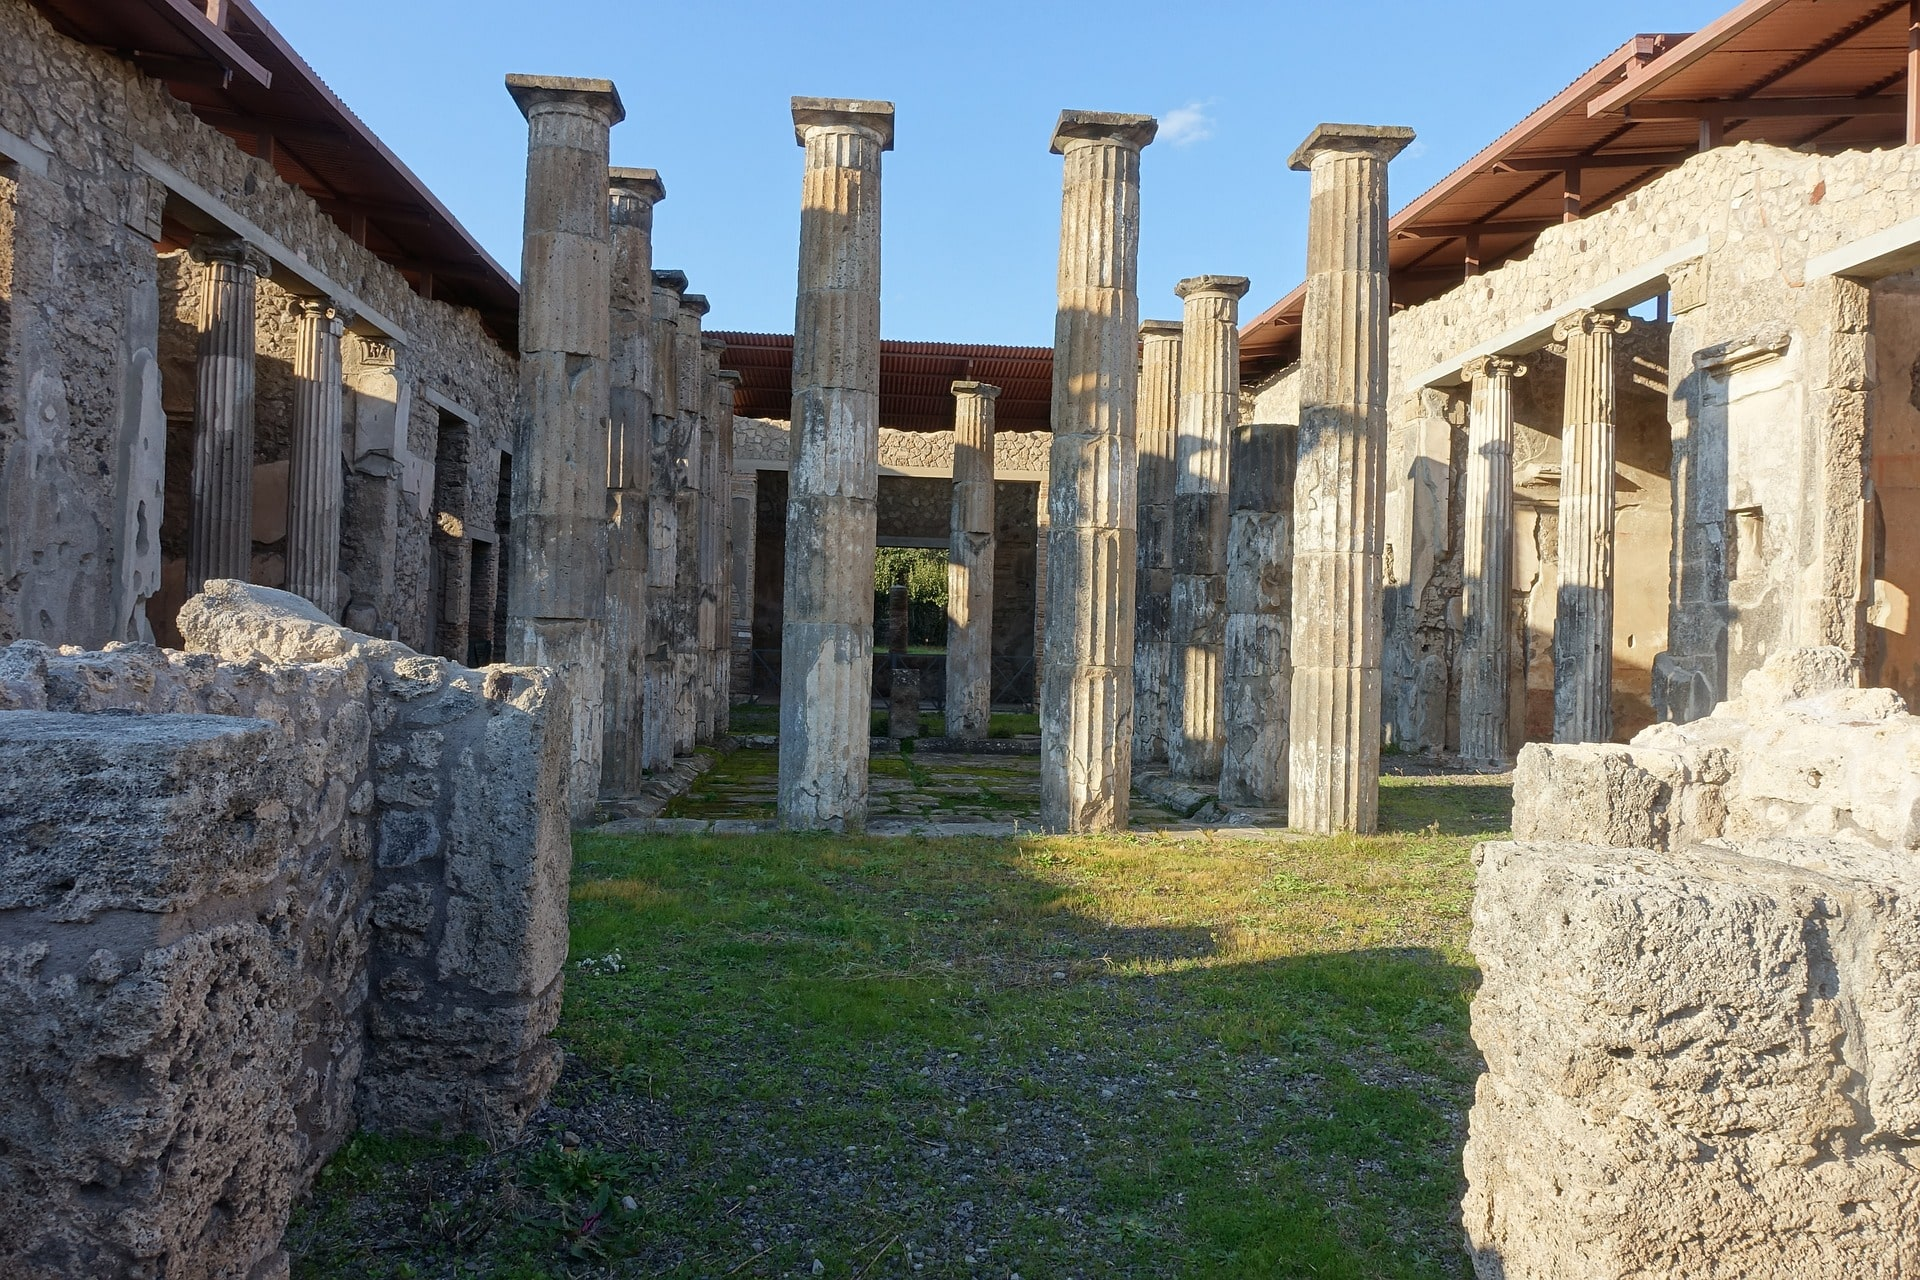 Visiting Pompeii is an eerie (but very cool) thing to do in Italy